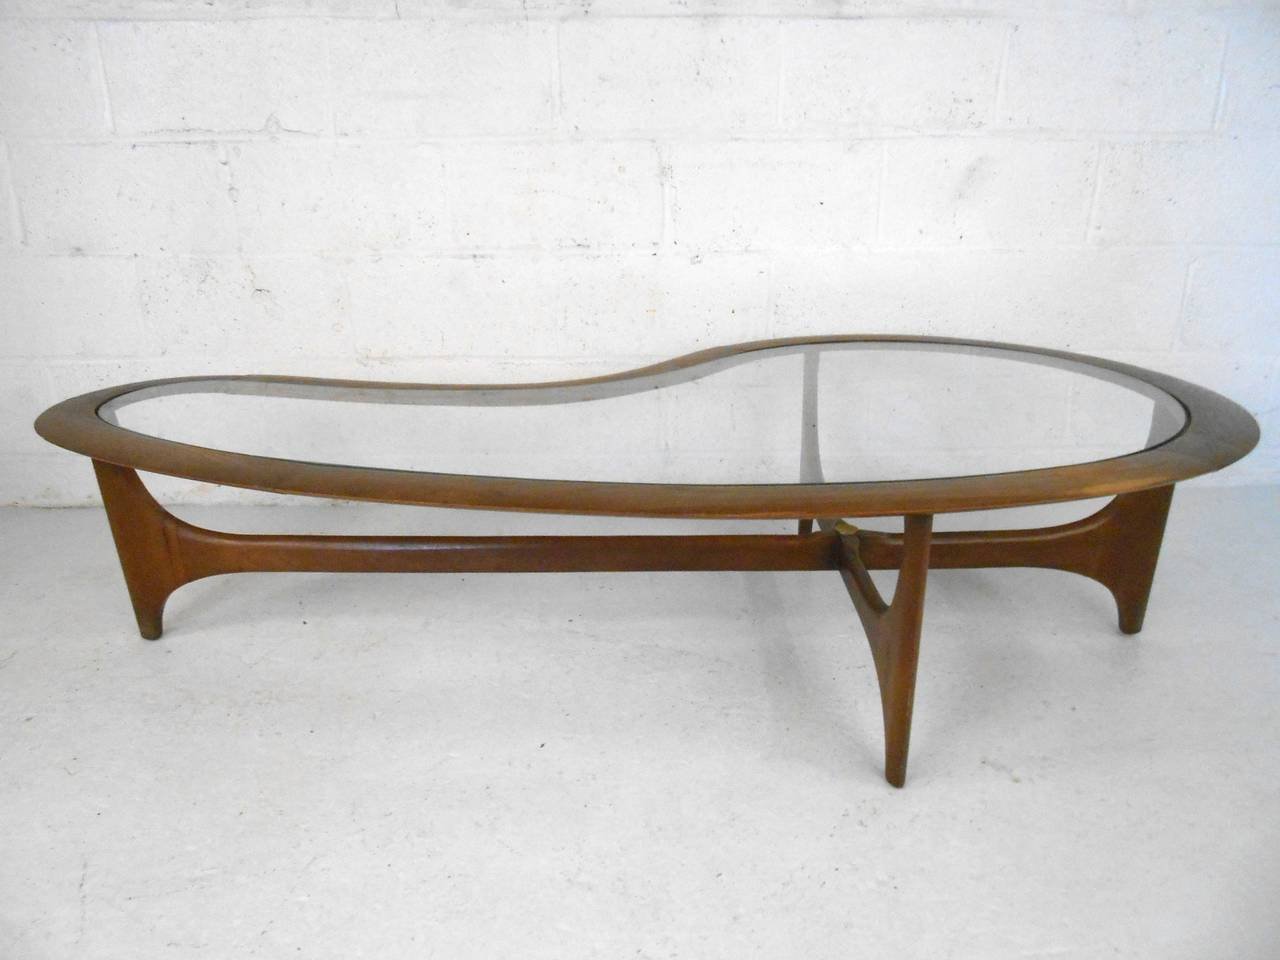 iron desk legs probably outrageous real retro modern end tables brilliant glass mid century walnut organic kidney shape coffee table interior and home artistic magnificent white